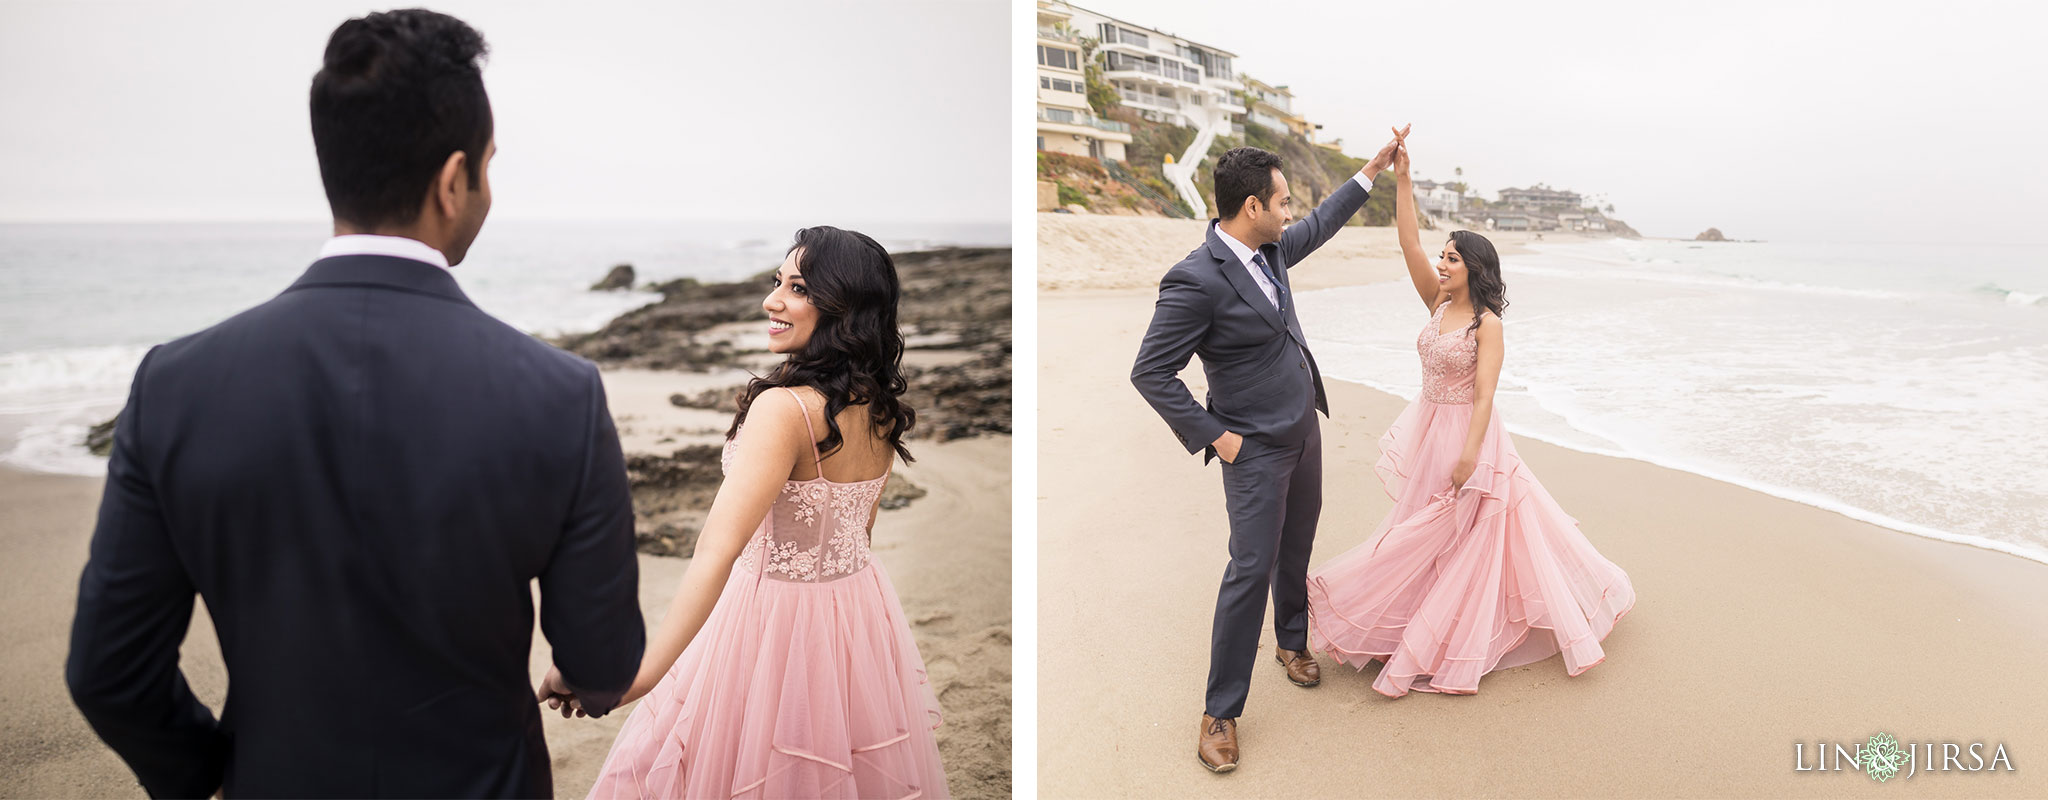 08 laguna beach sunrise private mansion engagement photography